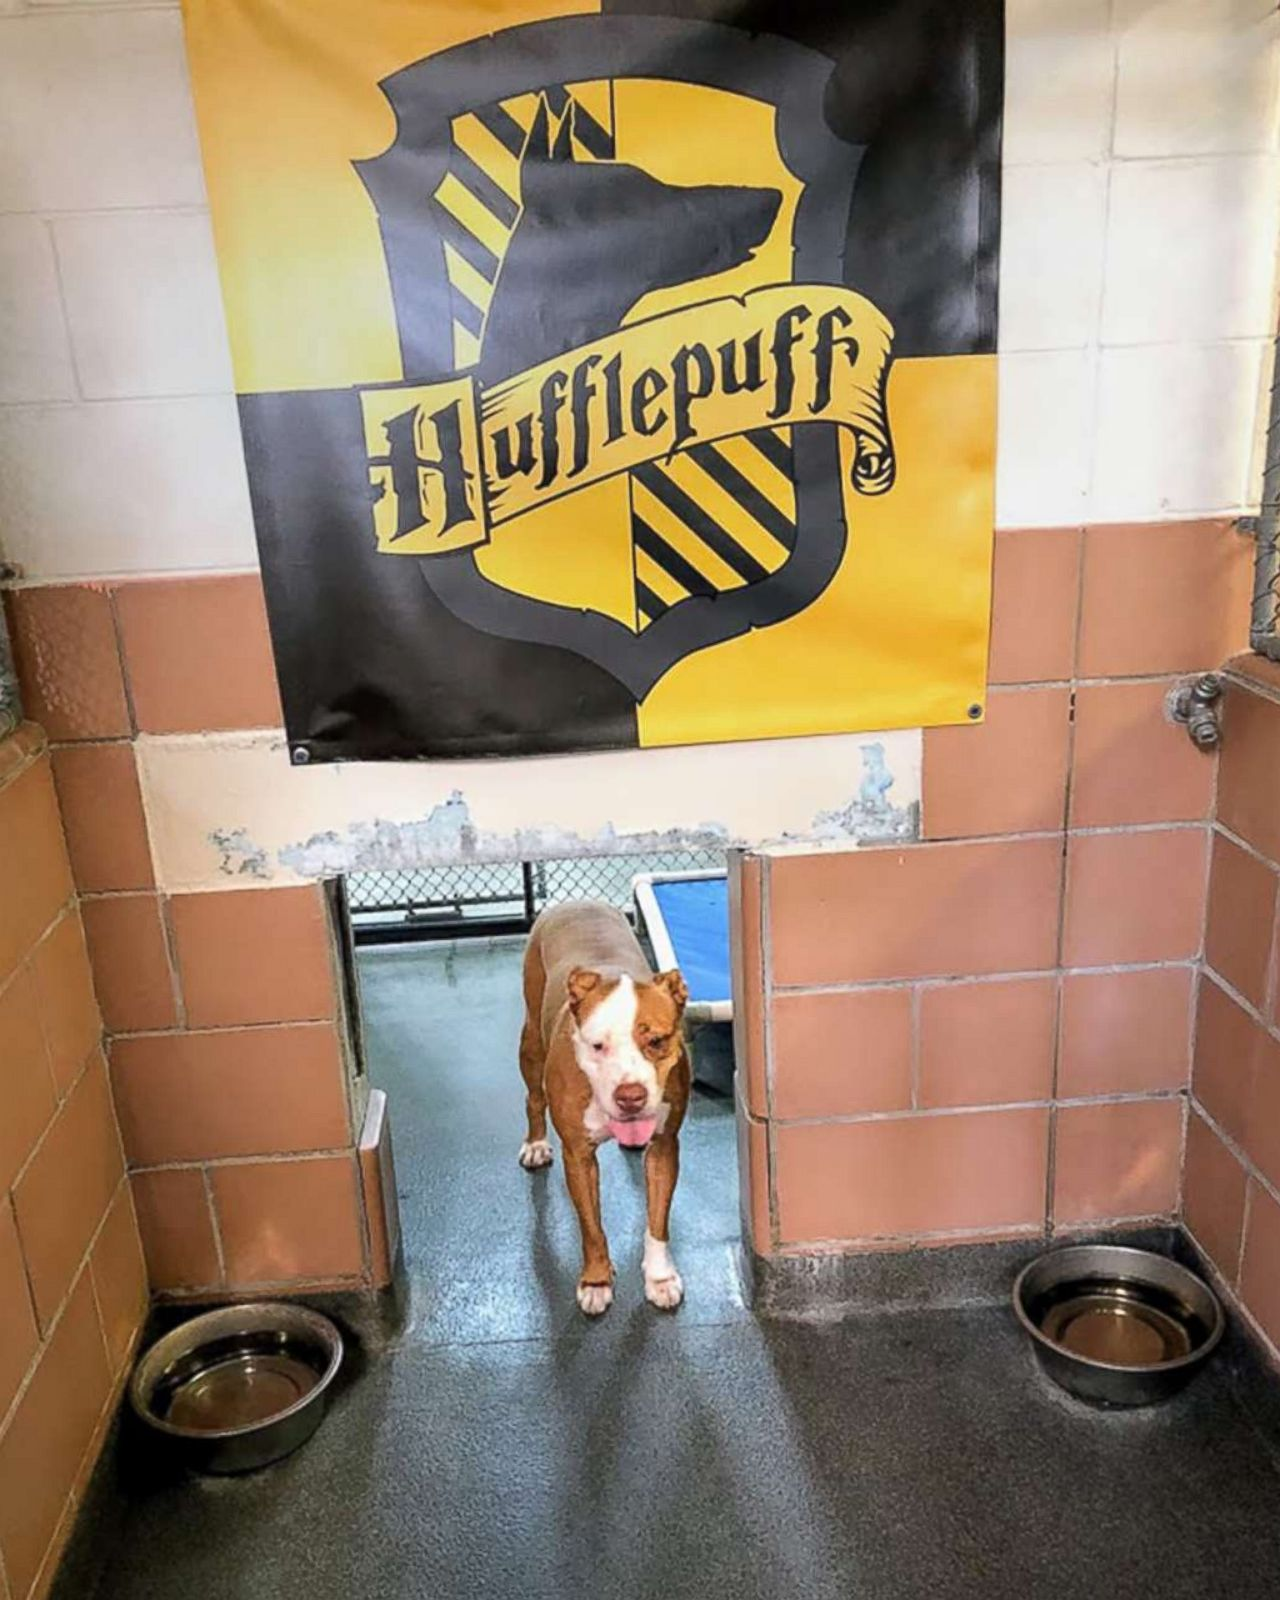 Gryffindogs or Hufflefluff: Animal shelter sorts dogs into